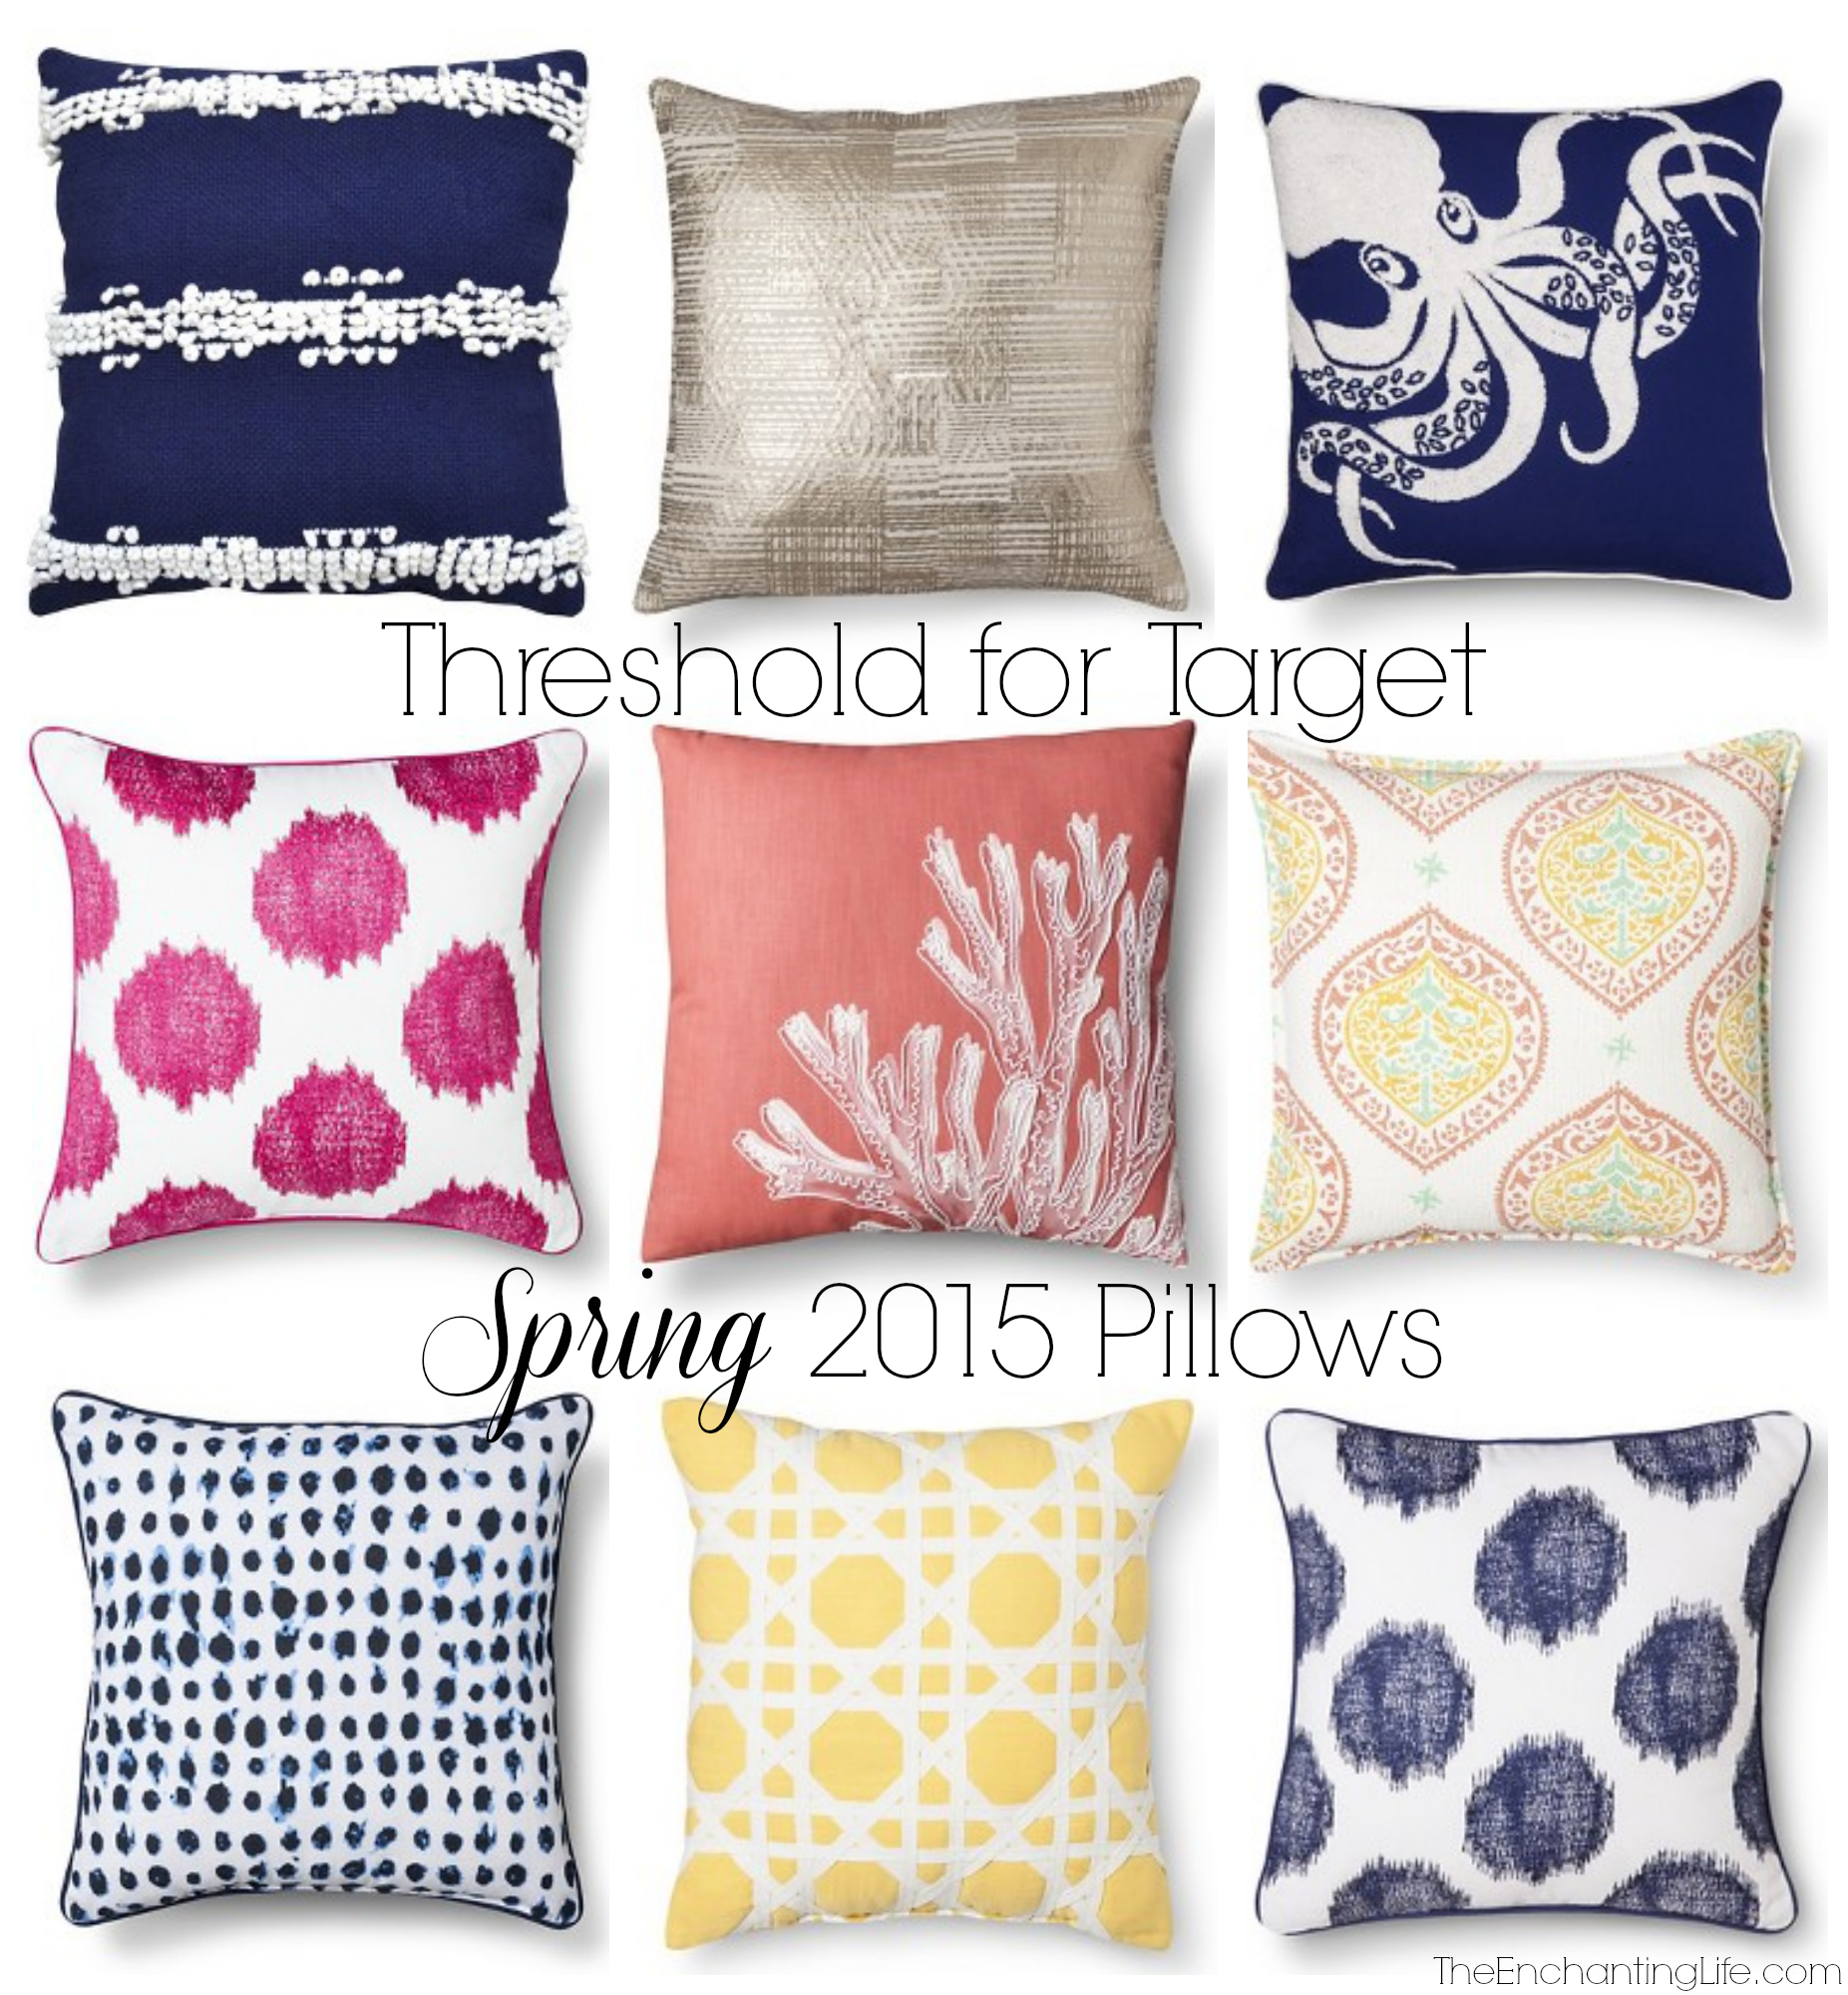 threshold spring 2015 pillows - Pink Home 2015